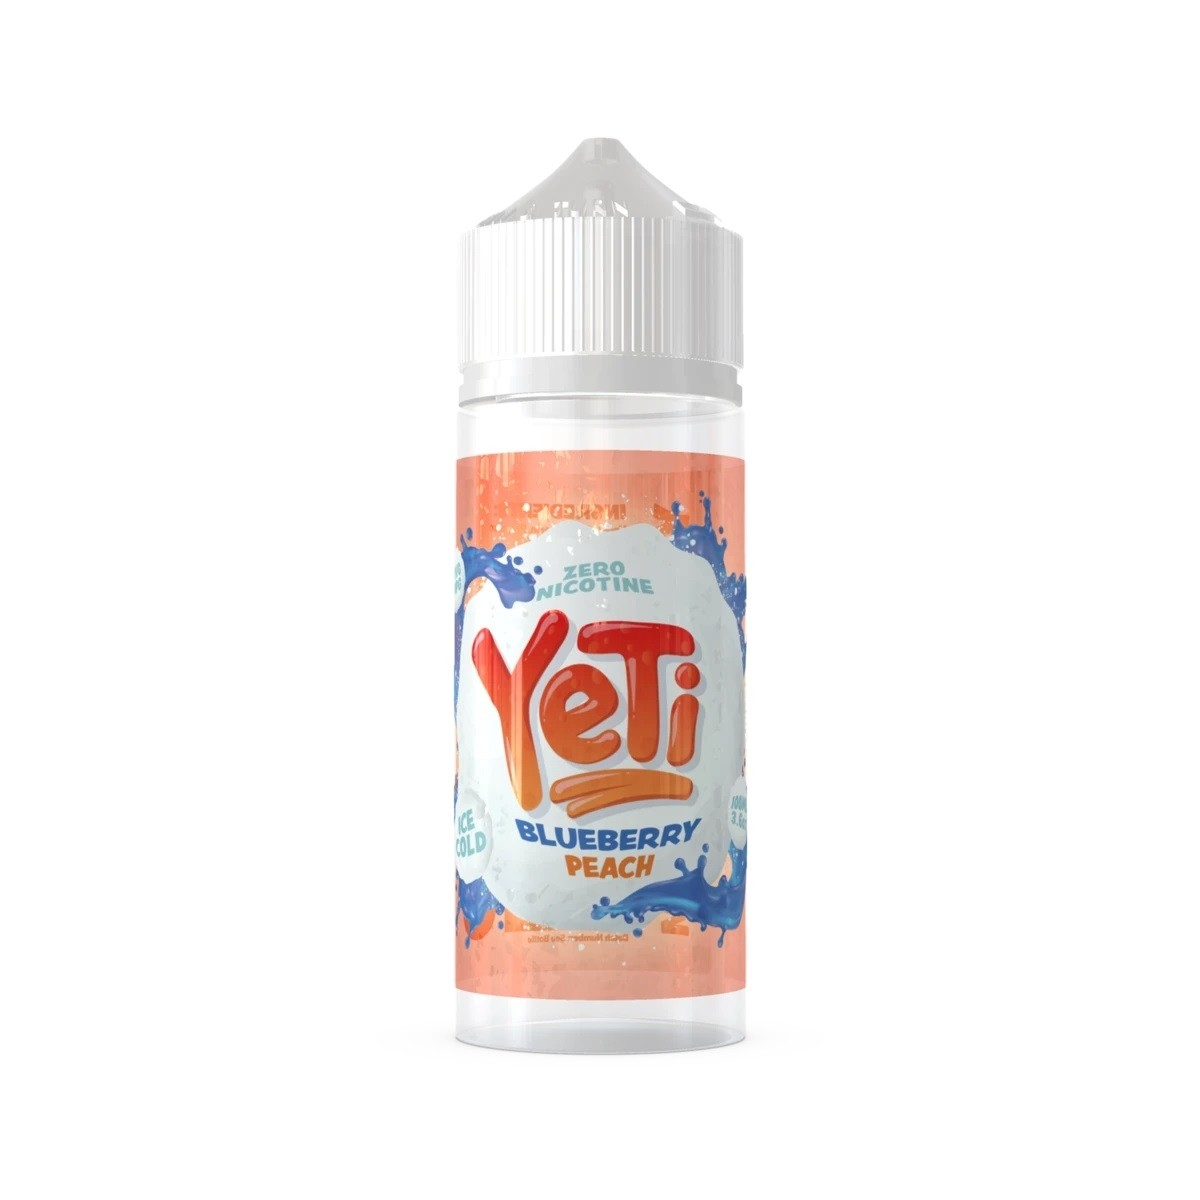 Yeti Blueberry Peach Ice